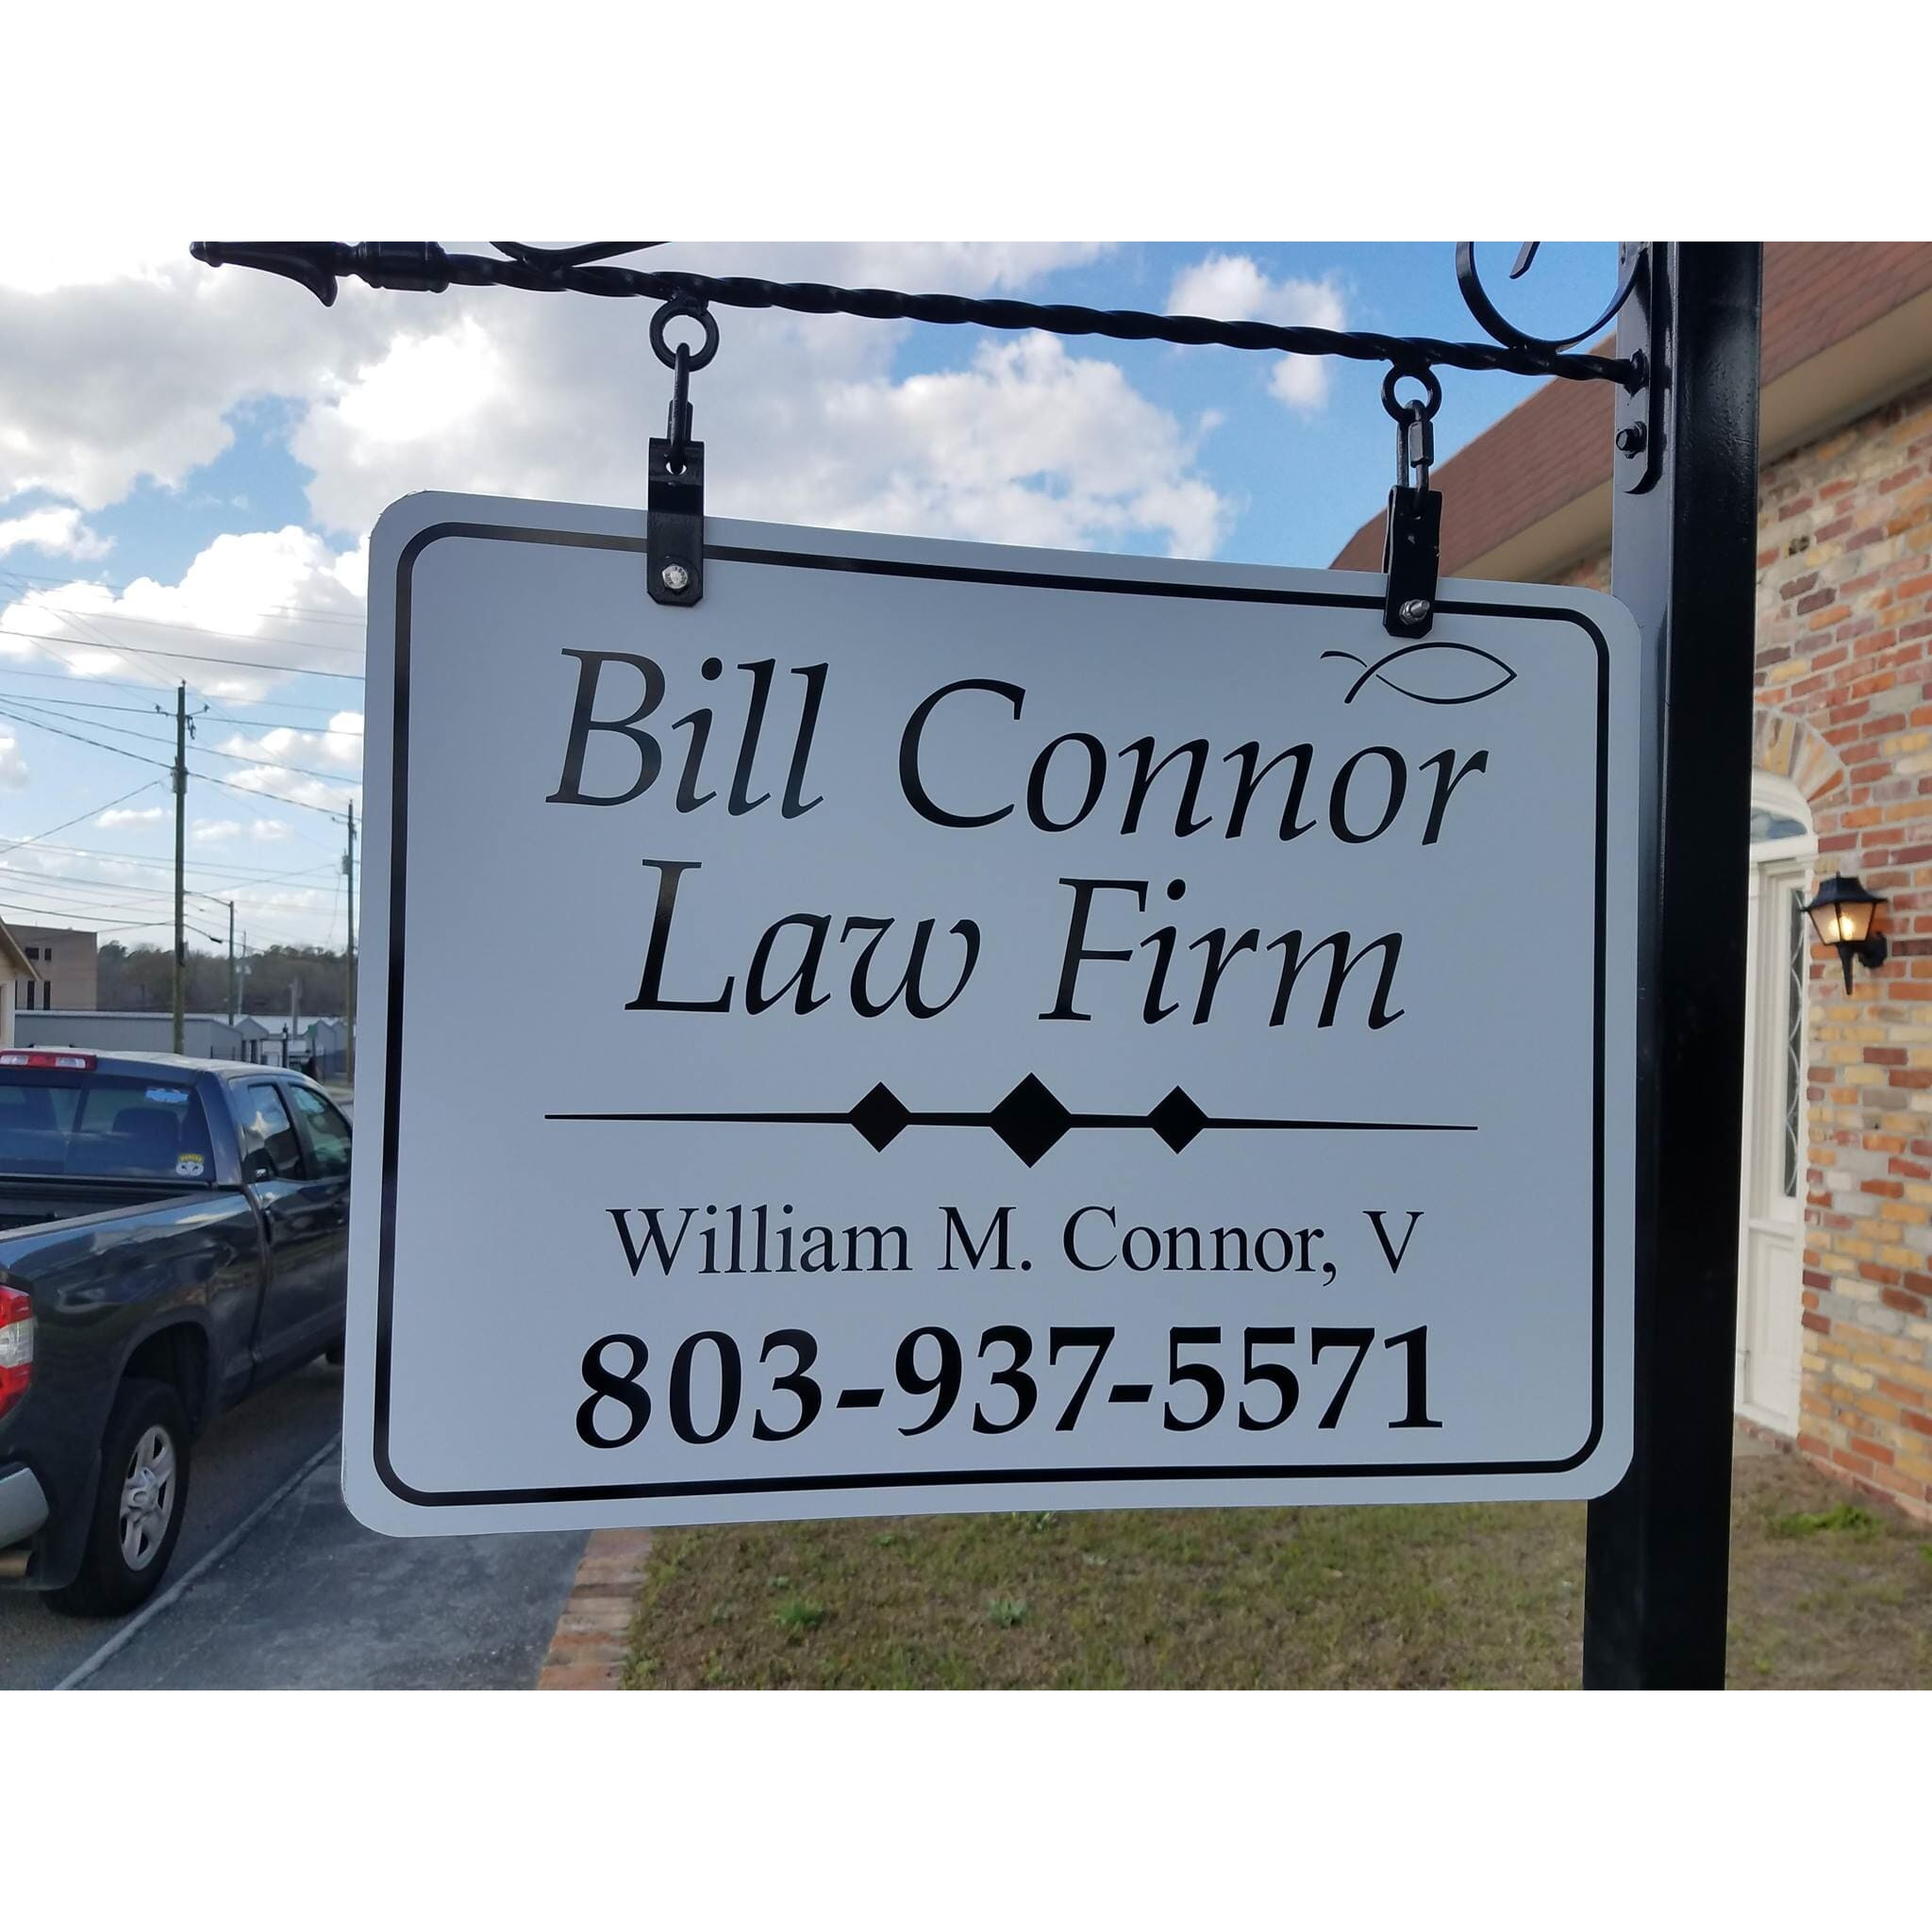 Bill Connor Law Firm LLC